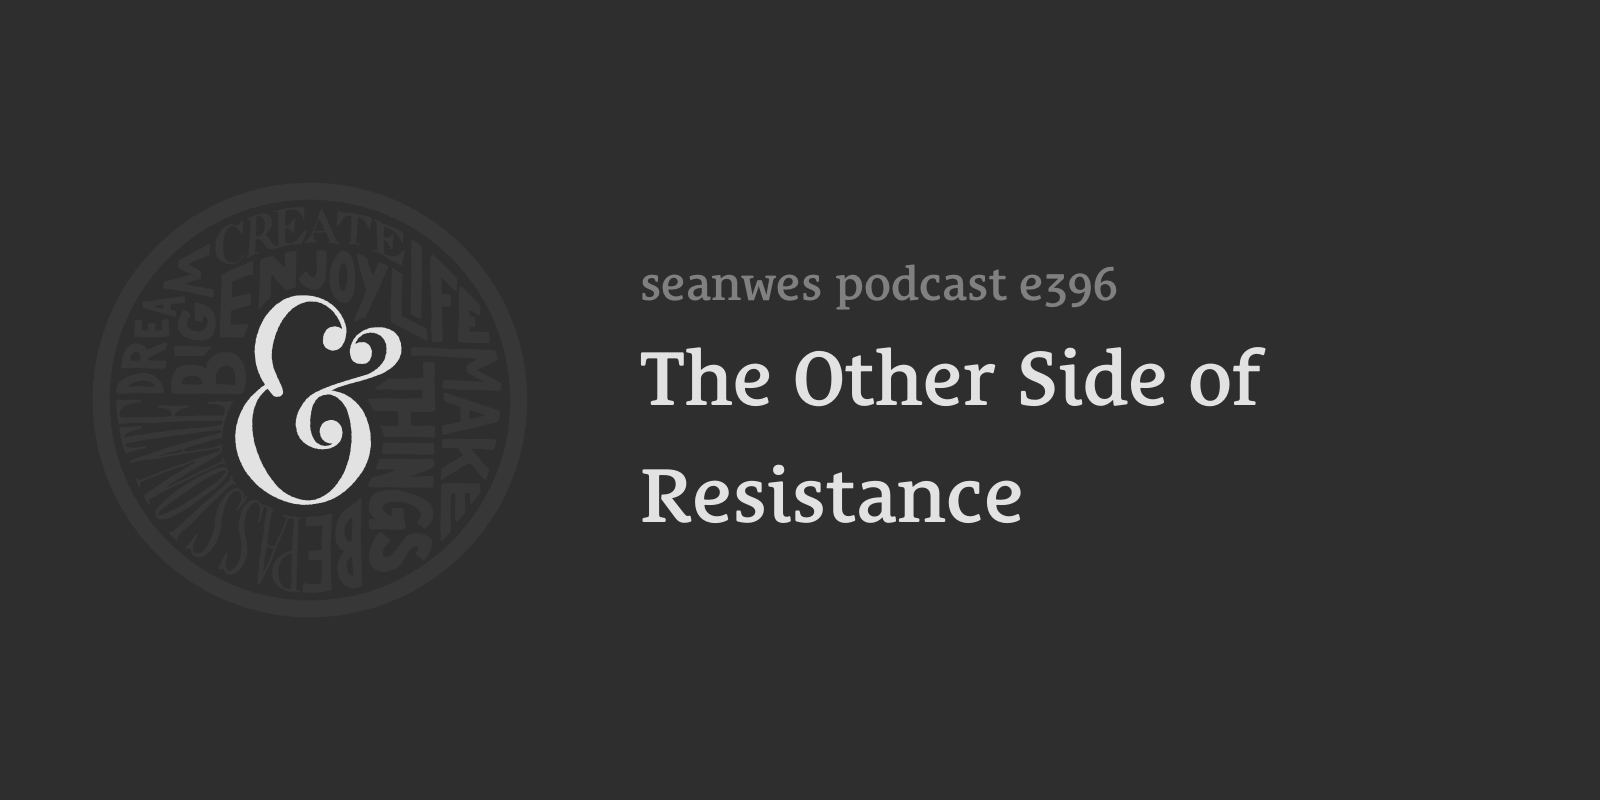 The Other Side of Resistance (Knowing When You're Passionate About Something)